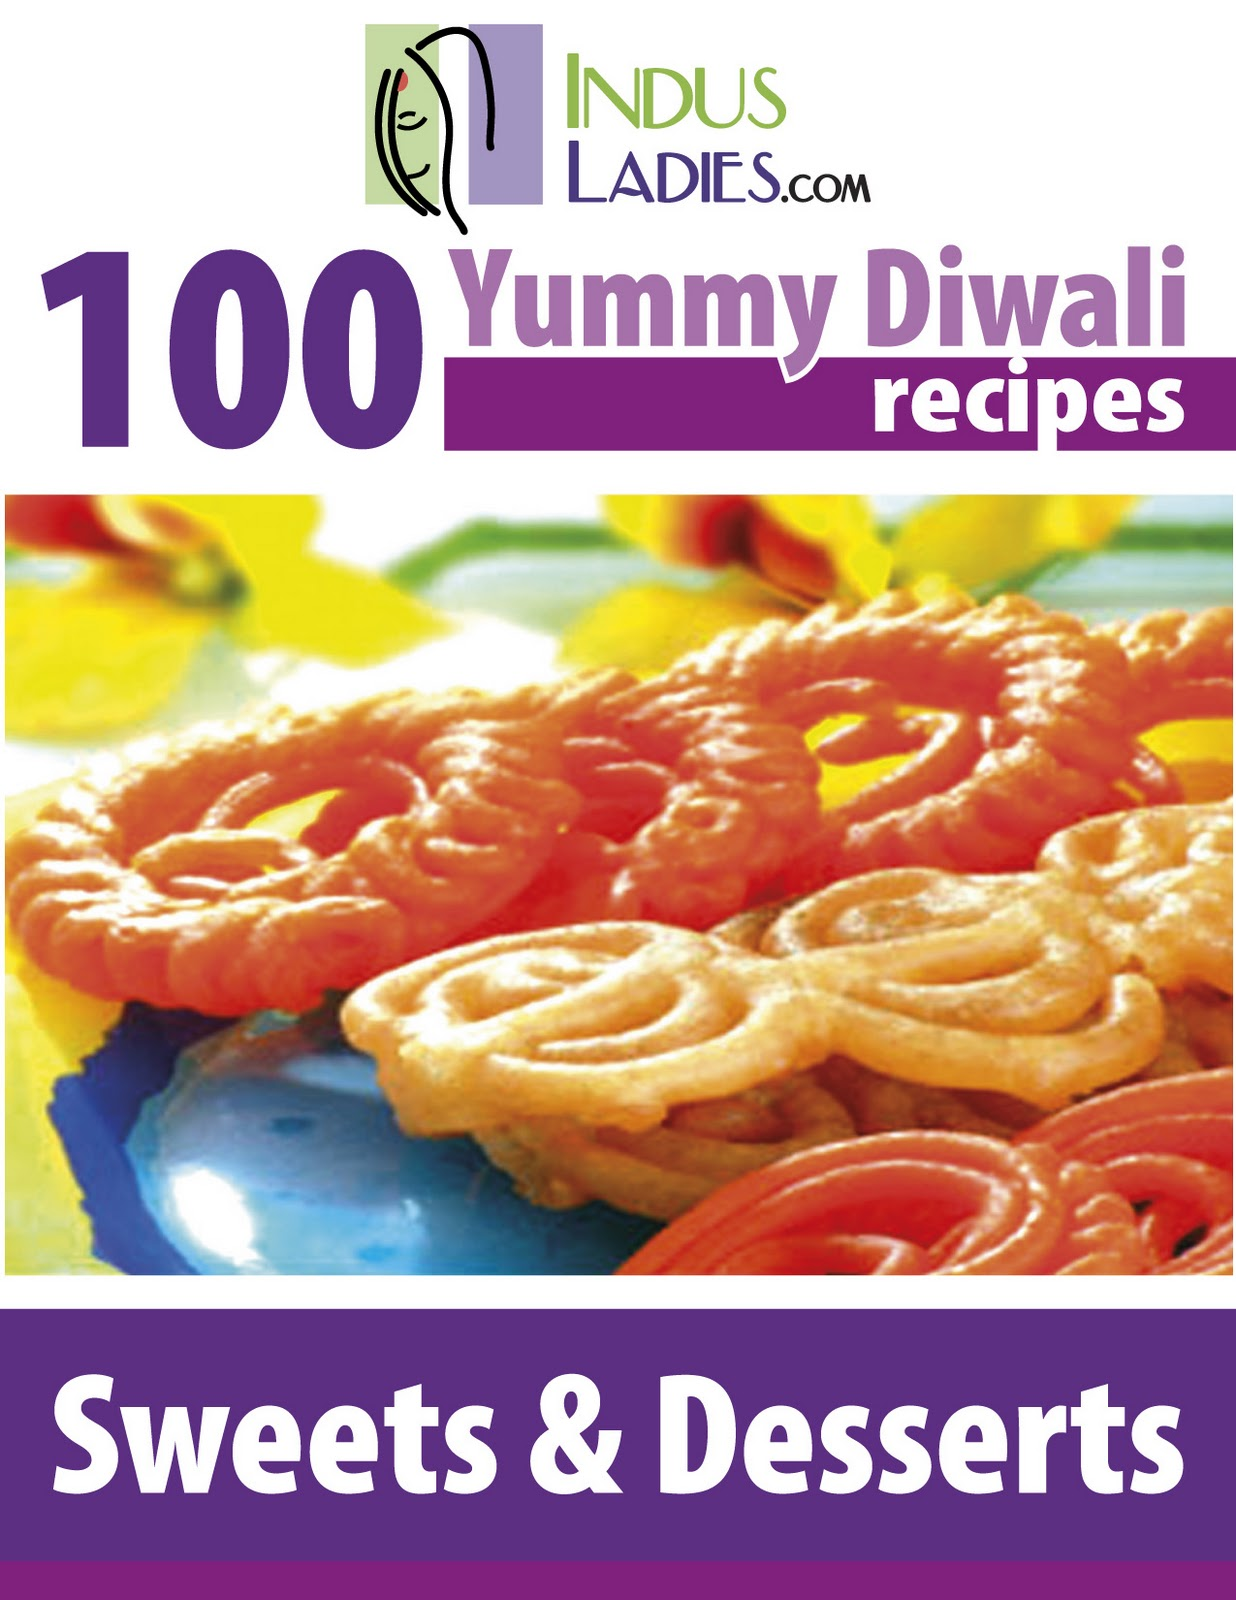 Kachuss delights free download ebook 100 yummy diwali recipes free download ebook 100 yummy diwali recipes sweets desserts forumfinder Choice Image